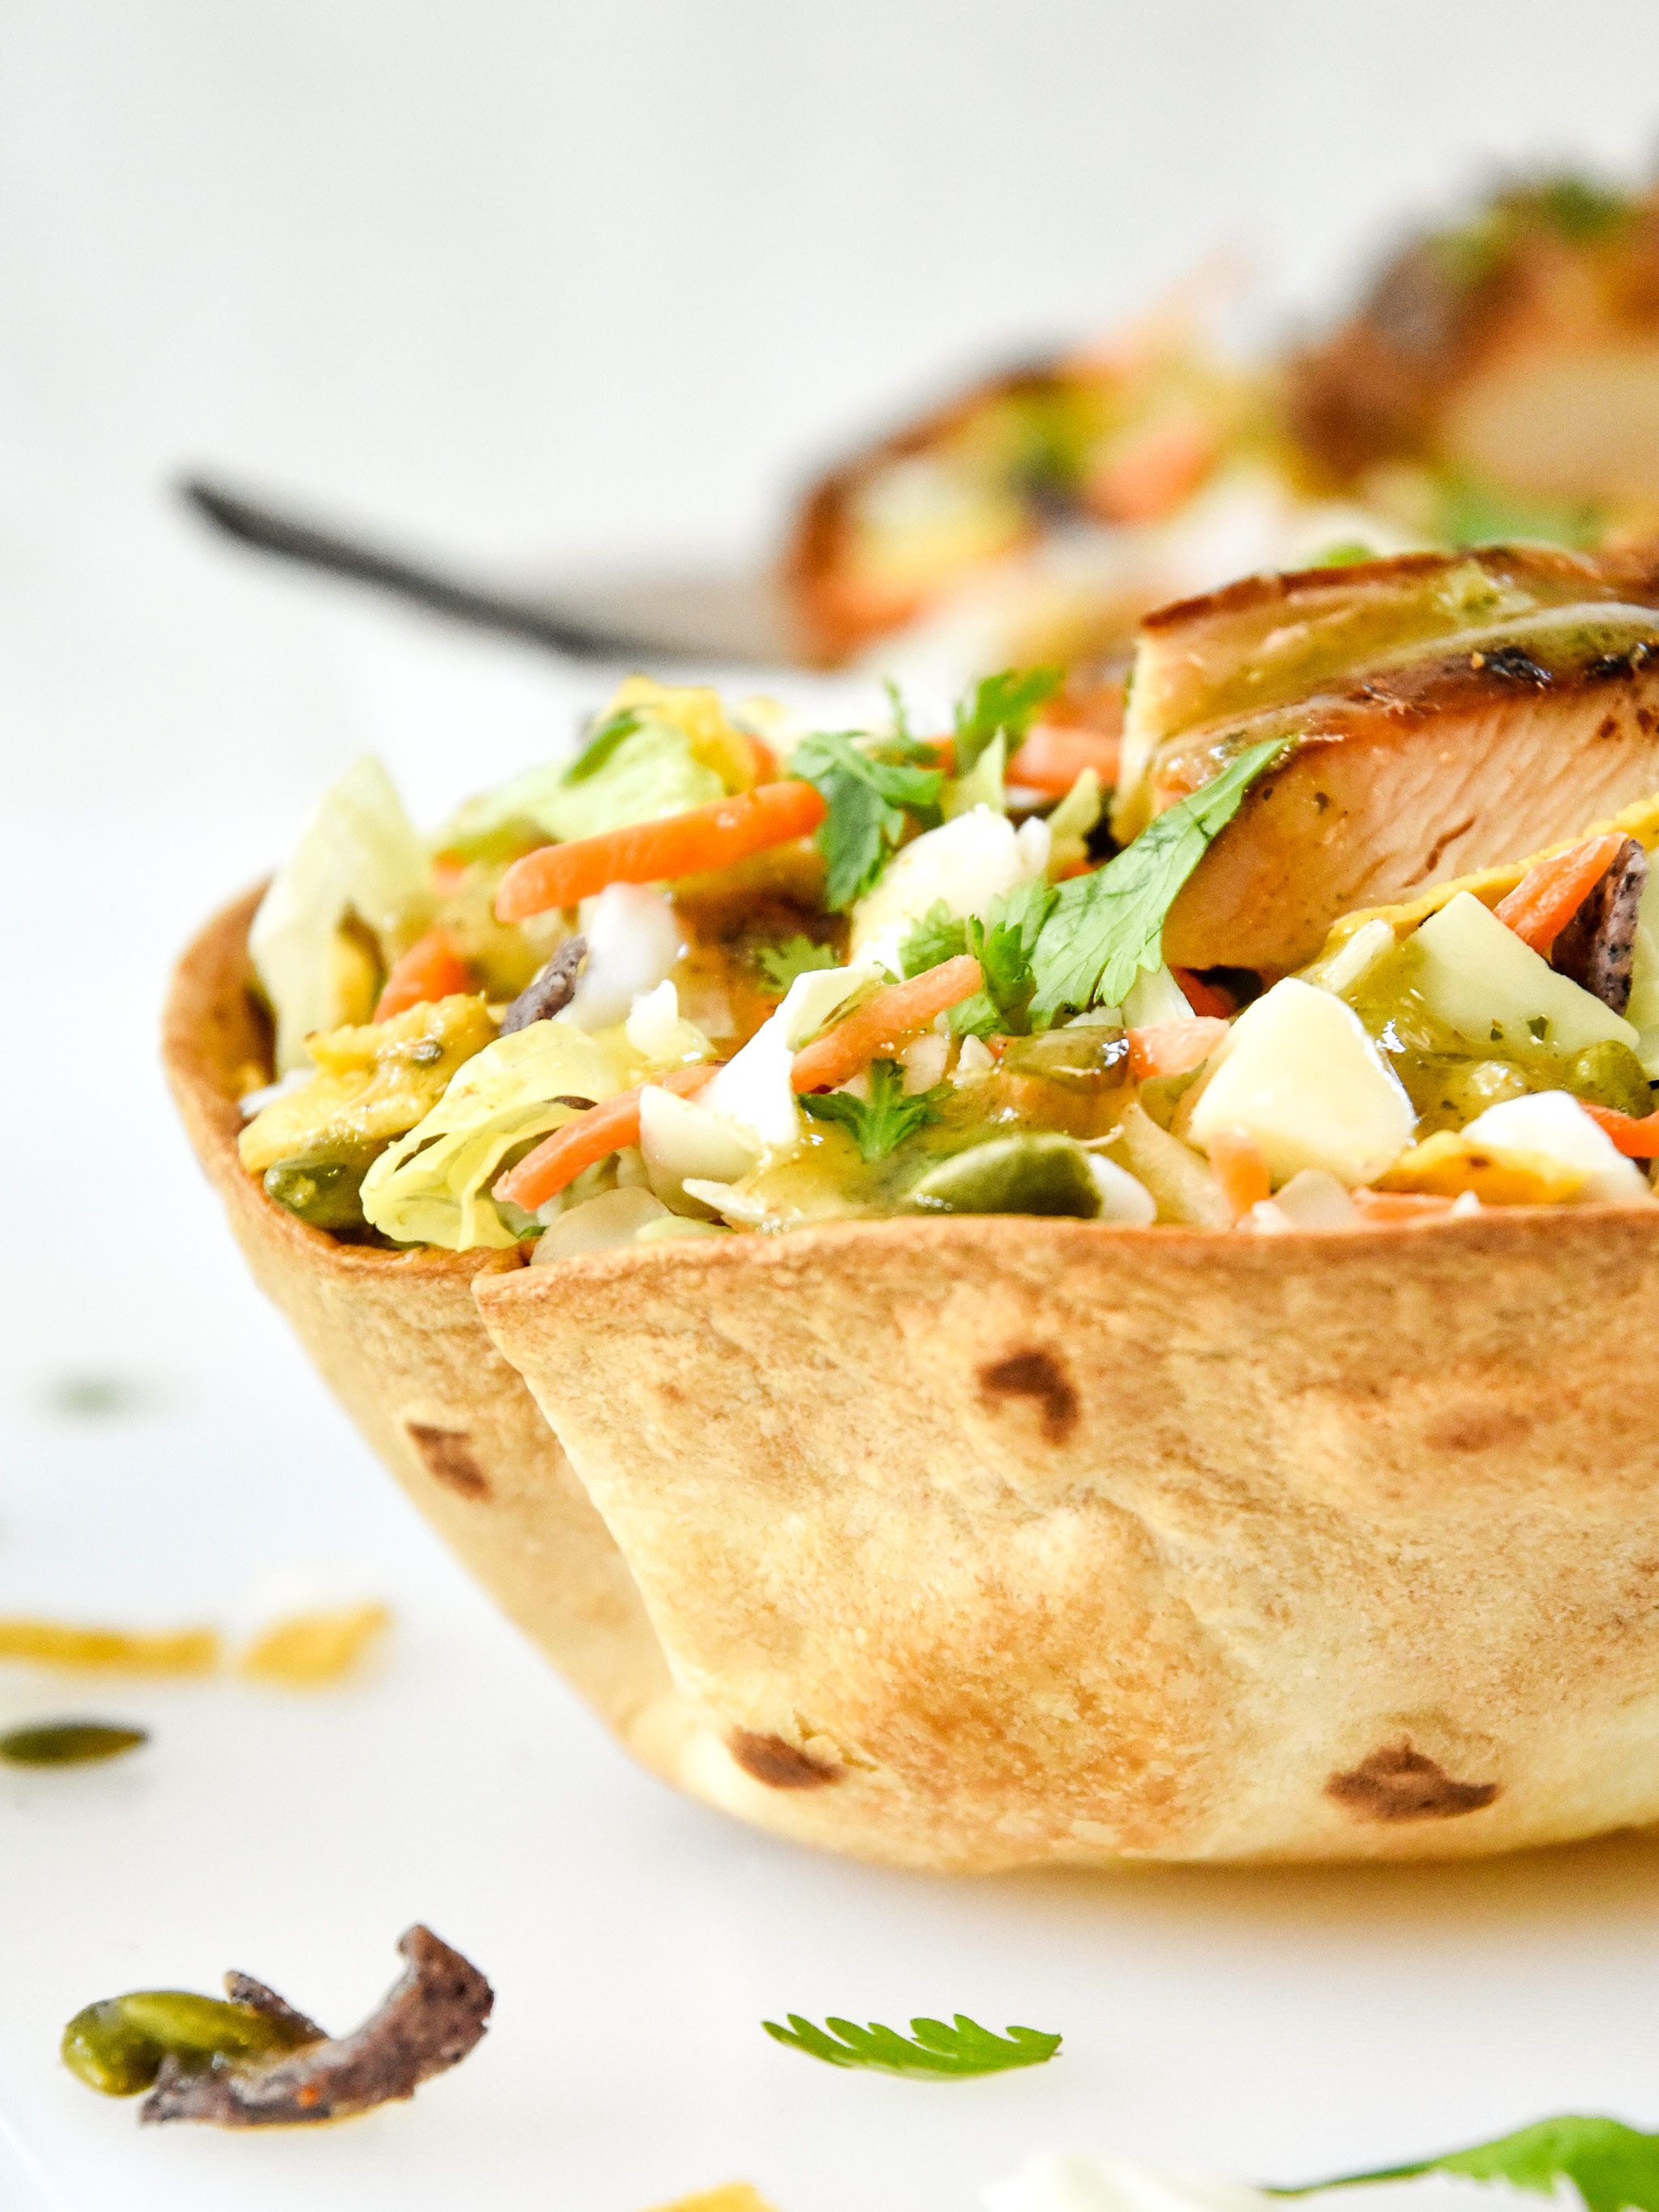 delicious taco salad with chicken in an air fryer flour tortilla bowl.